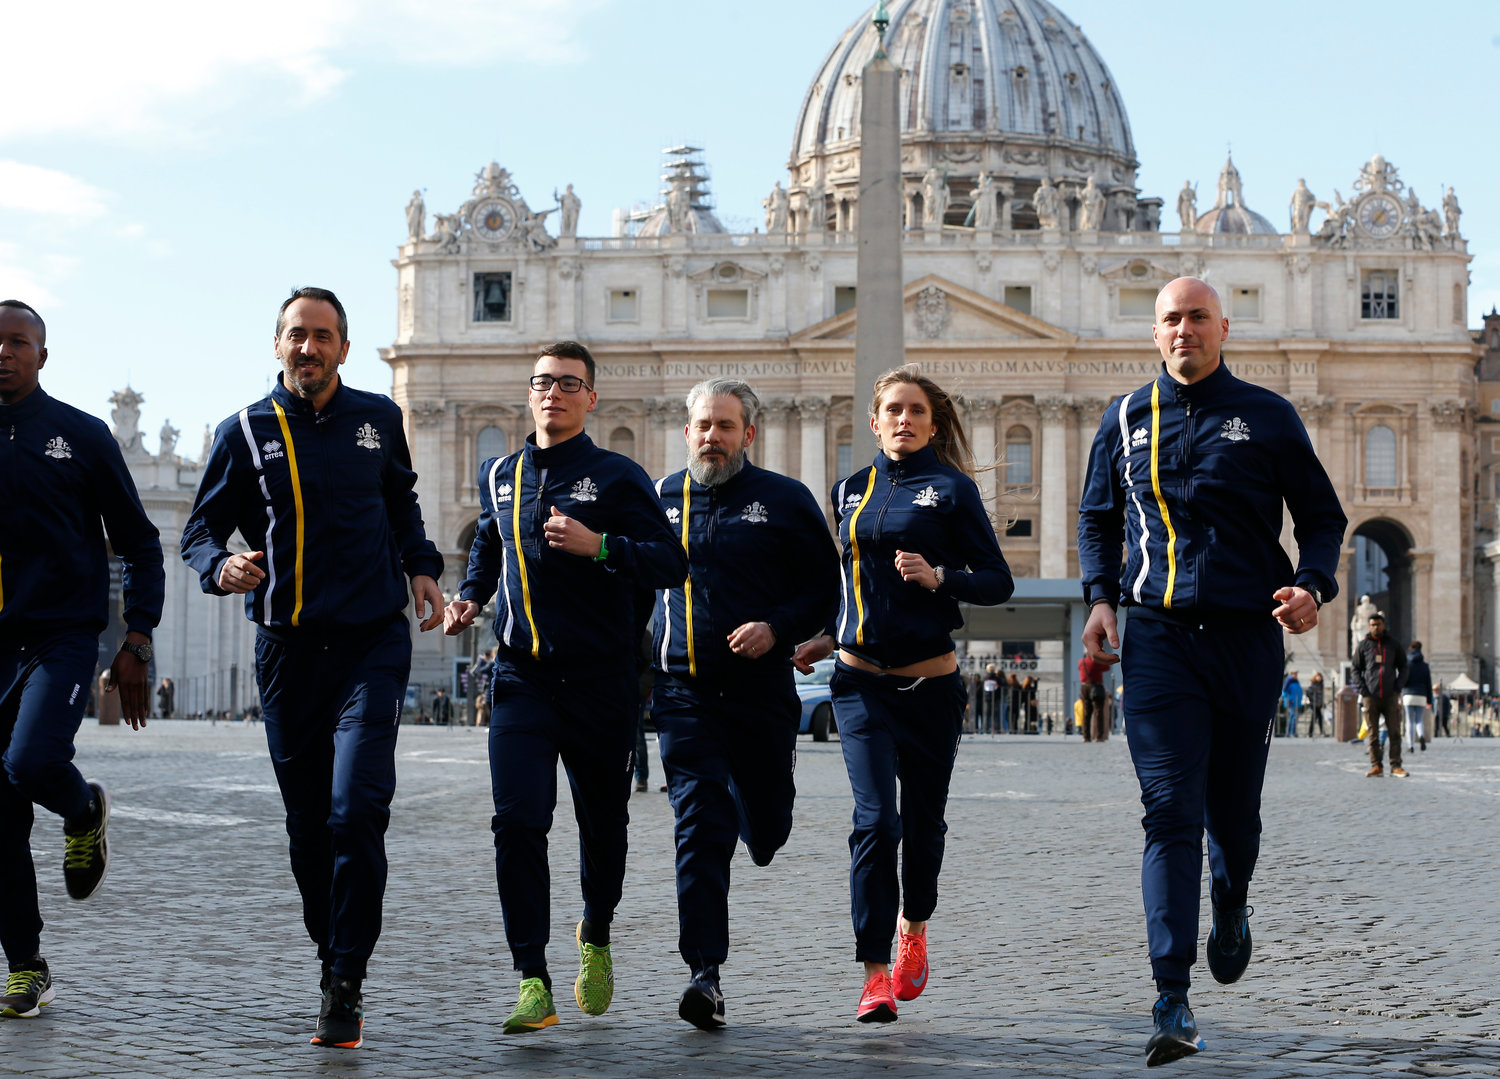 Members of the new Vatican Athletic sports association run during a photo opportunity outside St. Peter's Square at the Vatican Jan. 10.